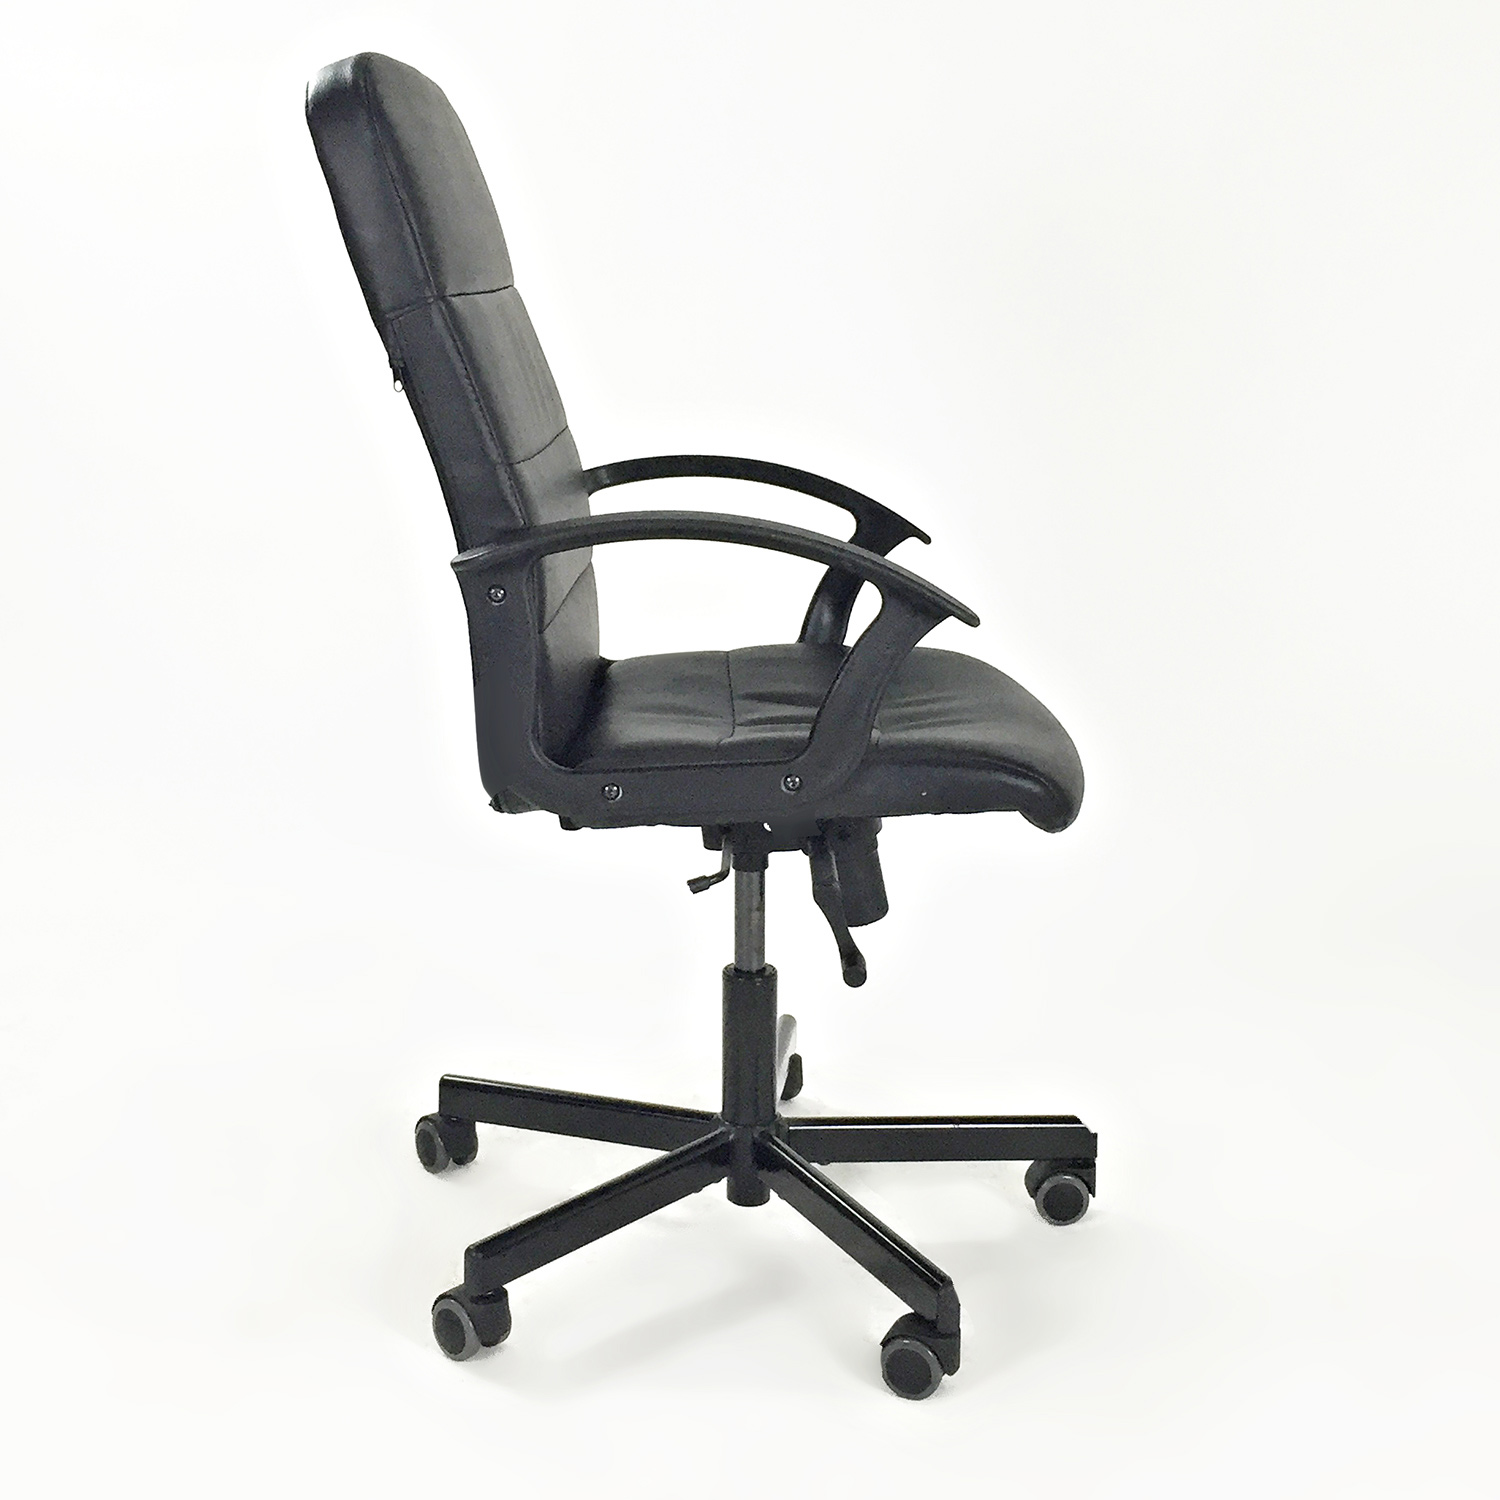 Ikea Black Chair 58 Off Ikea Black Office Chair Chairs